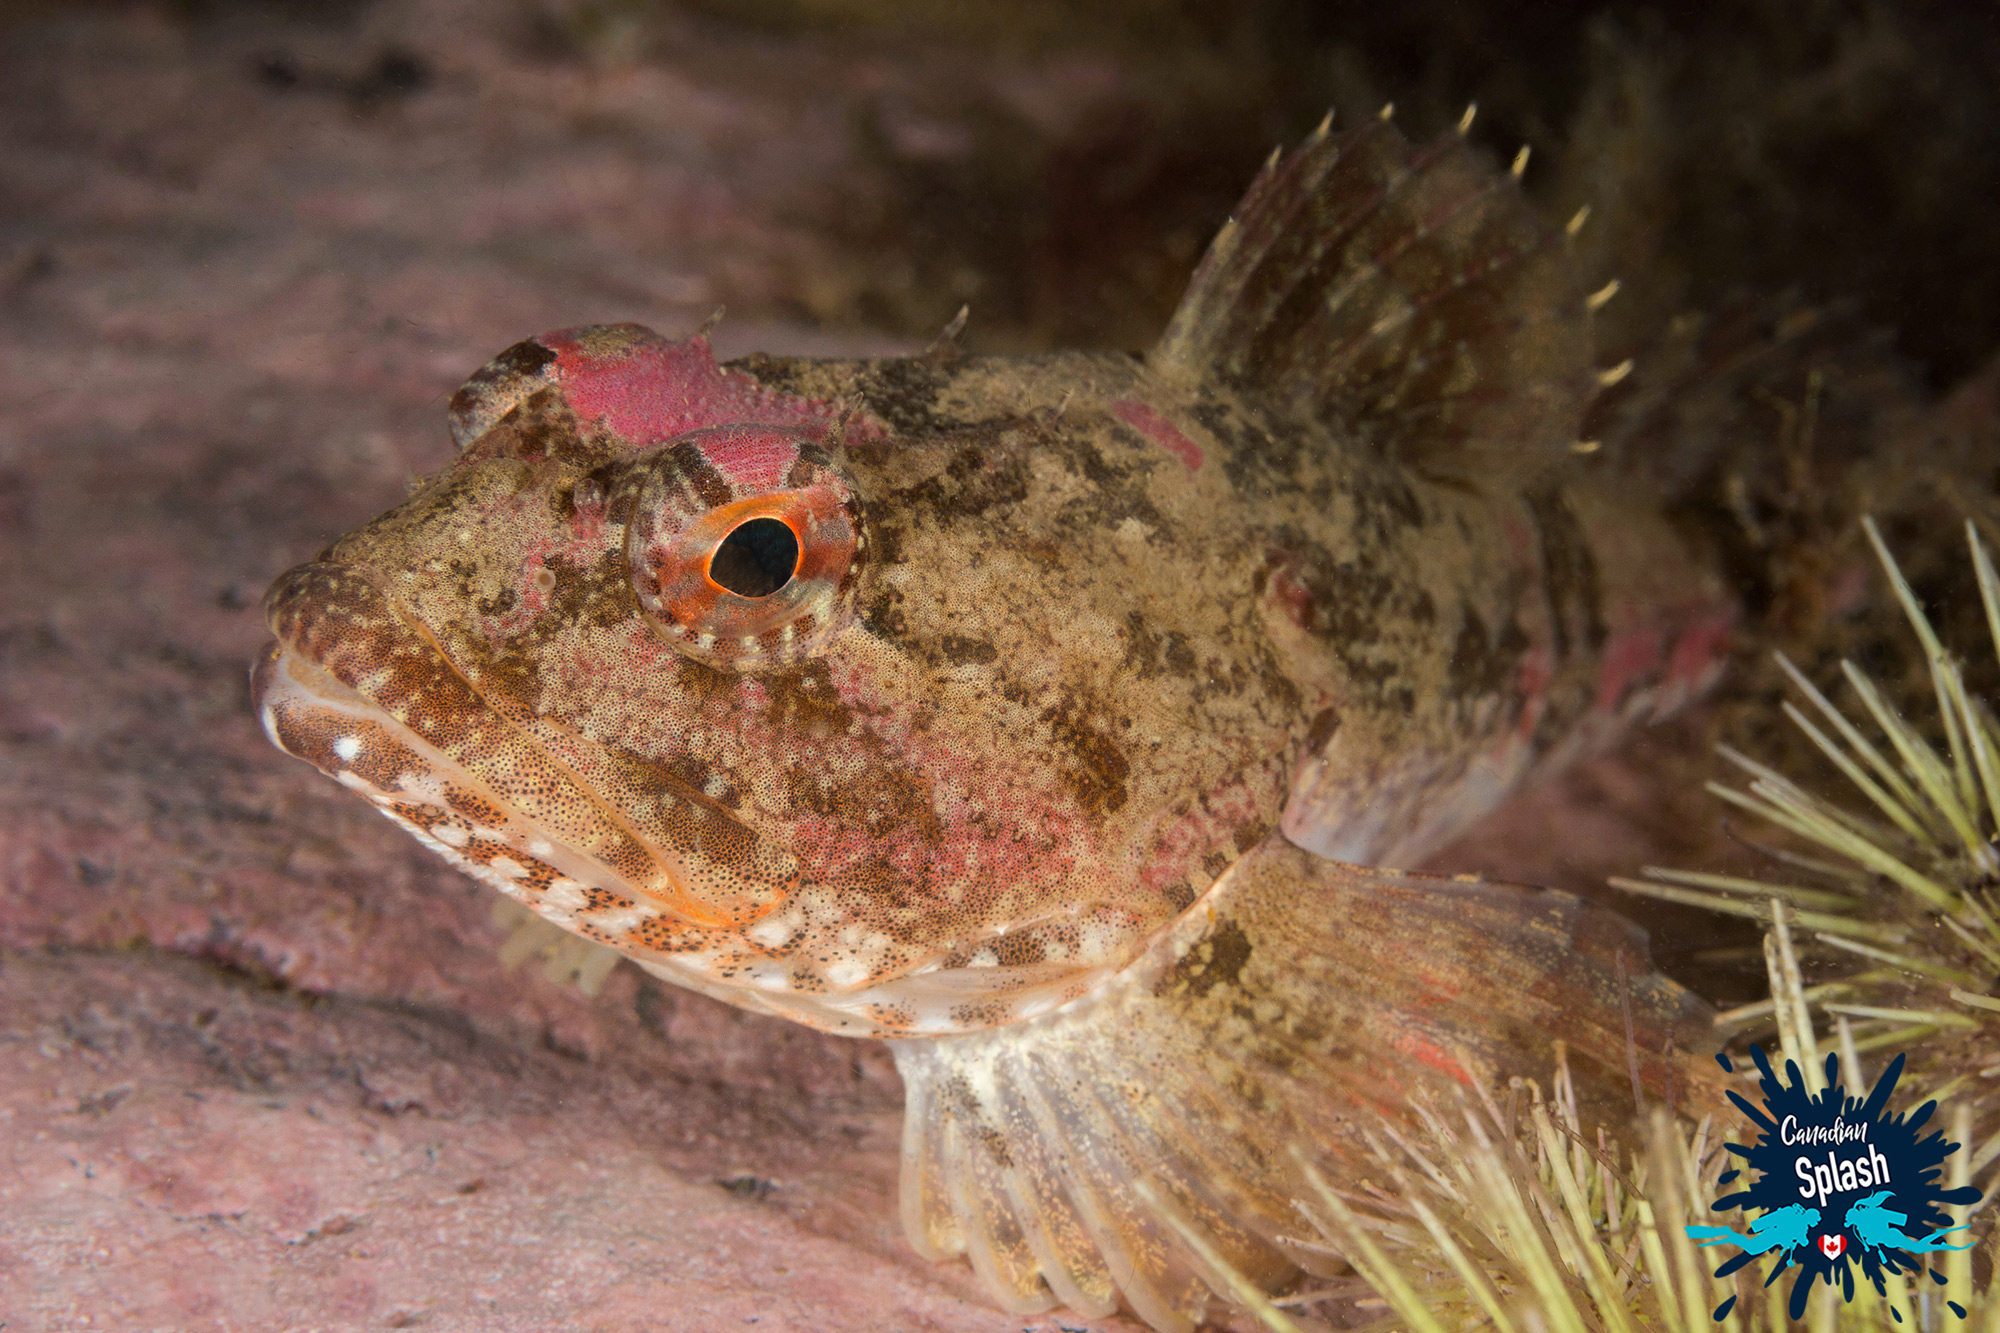 Sculpin On A Rock Coated In Coralline Algae In The Bay Of Fundy, Deer Island, NB